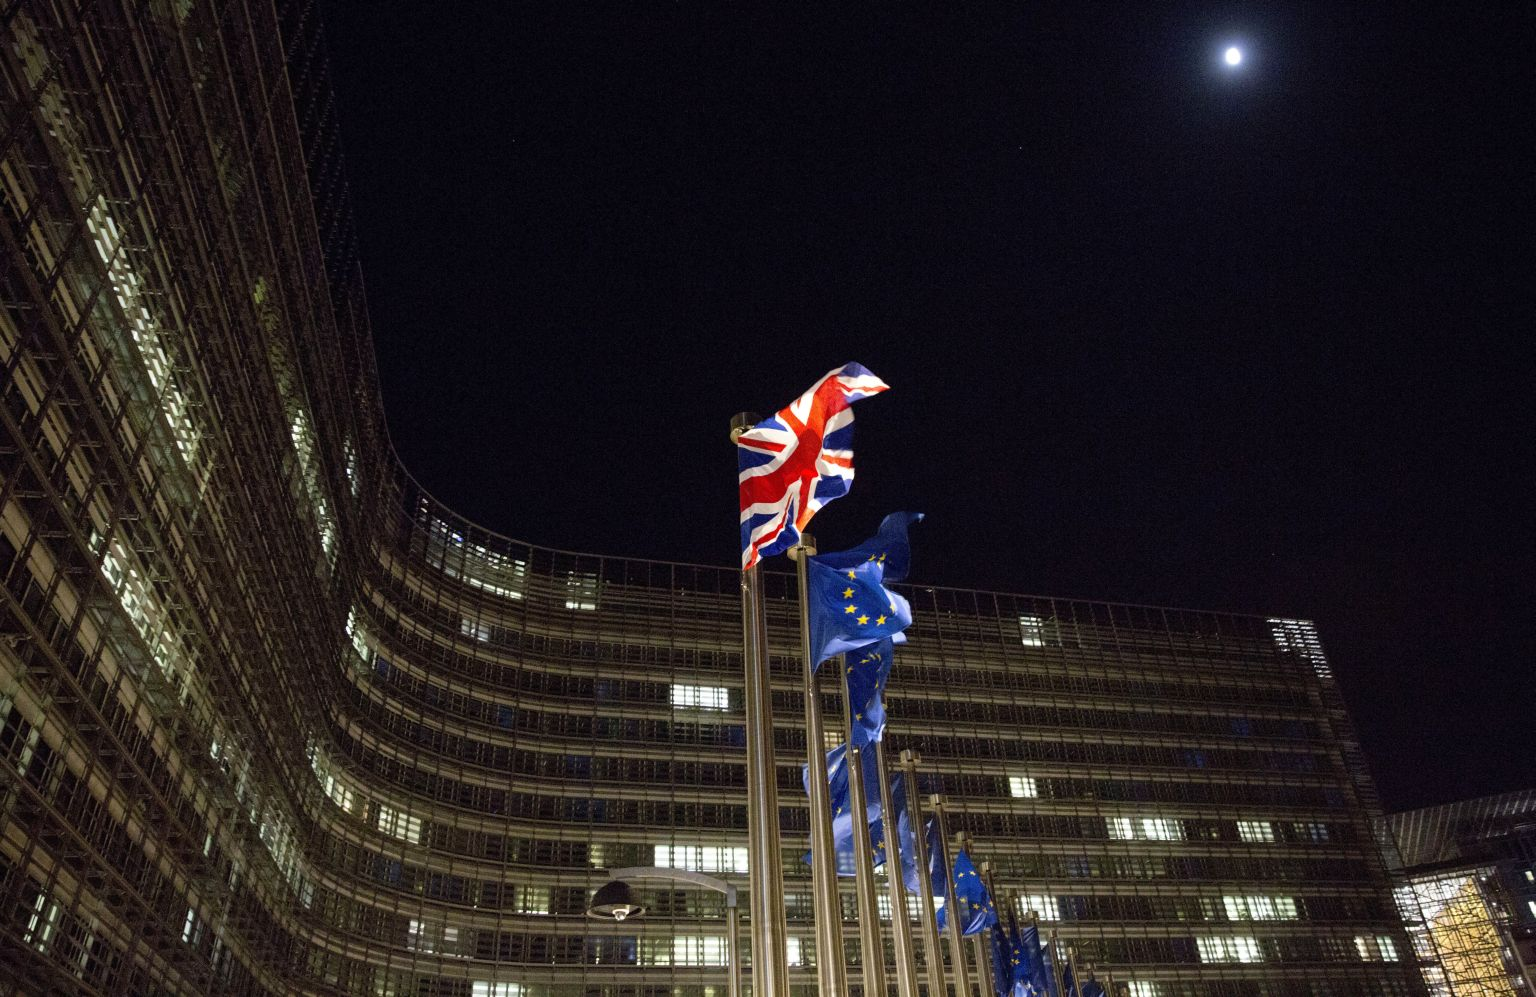 7The British and EU flags flap in the wind outside EU headquarters in Brussels on Friday, Dec. 8, 2017. British Prime Minister Theresa May, met with European Commission President Jean-Claude Juncker early Friday morning following crucial overnight talks on the issue of the Irish border. (AP Photo/Virginia Mayo)